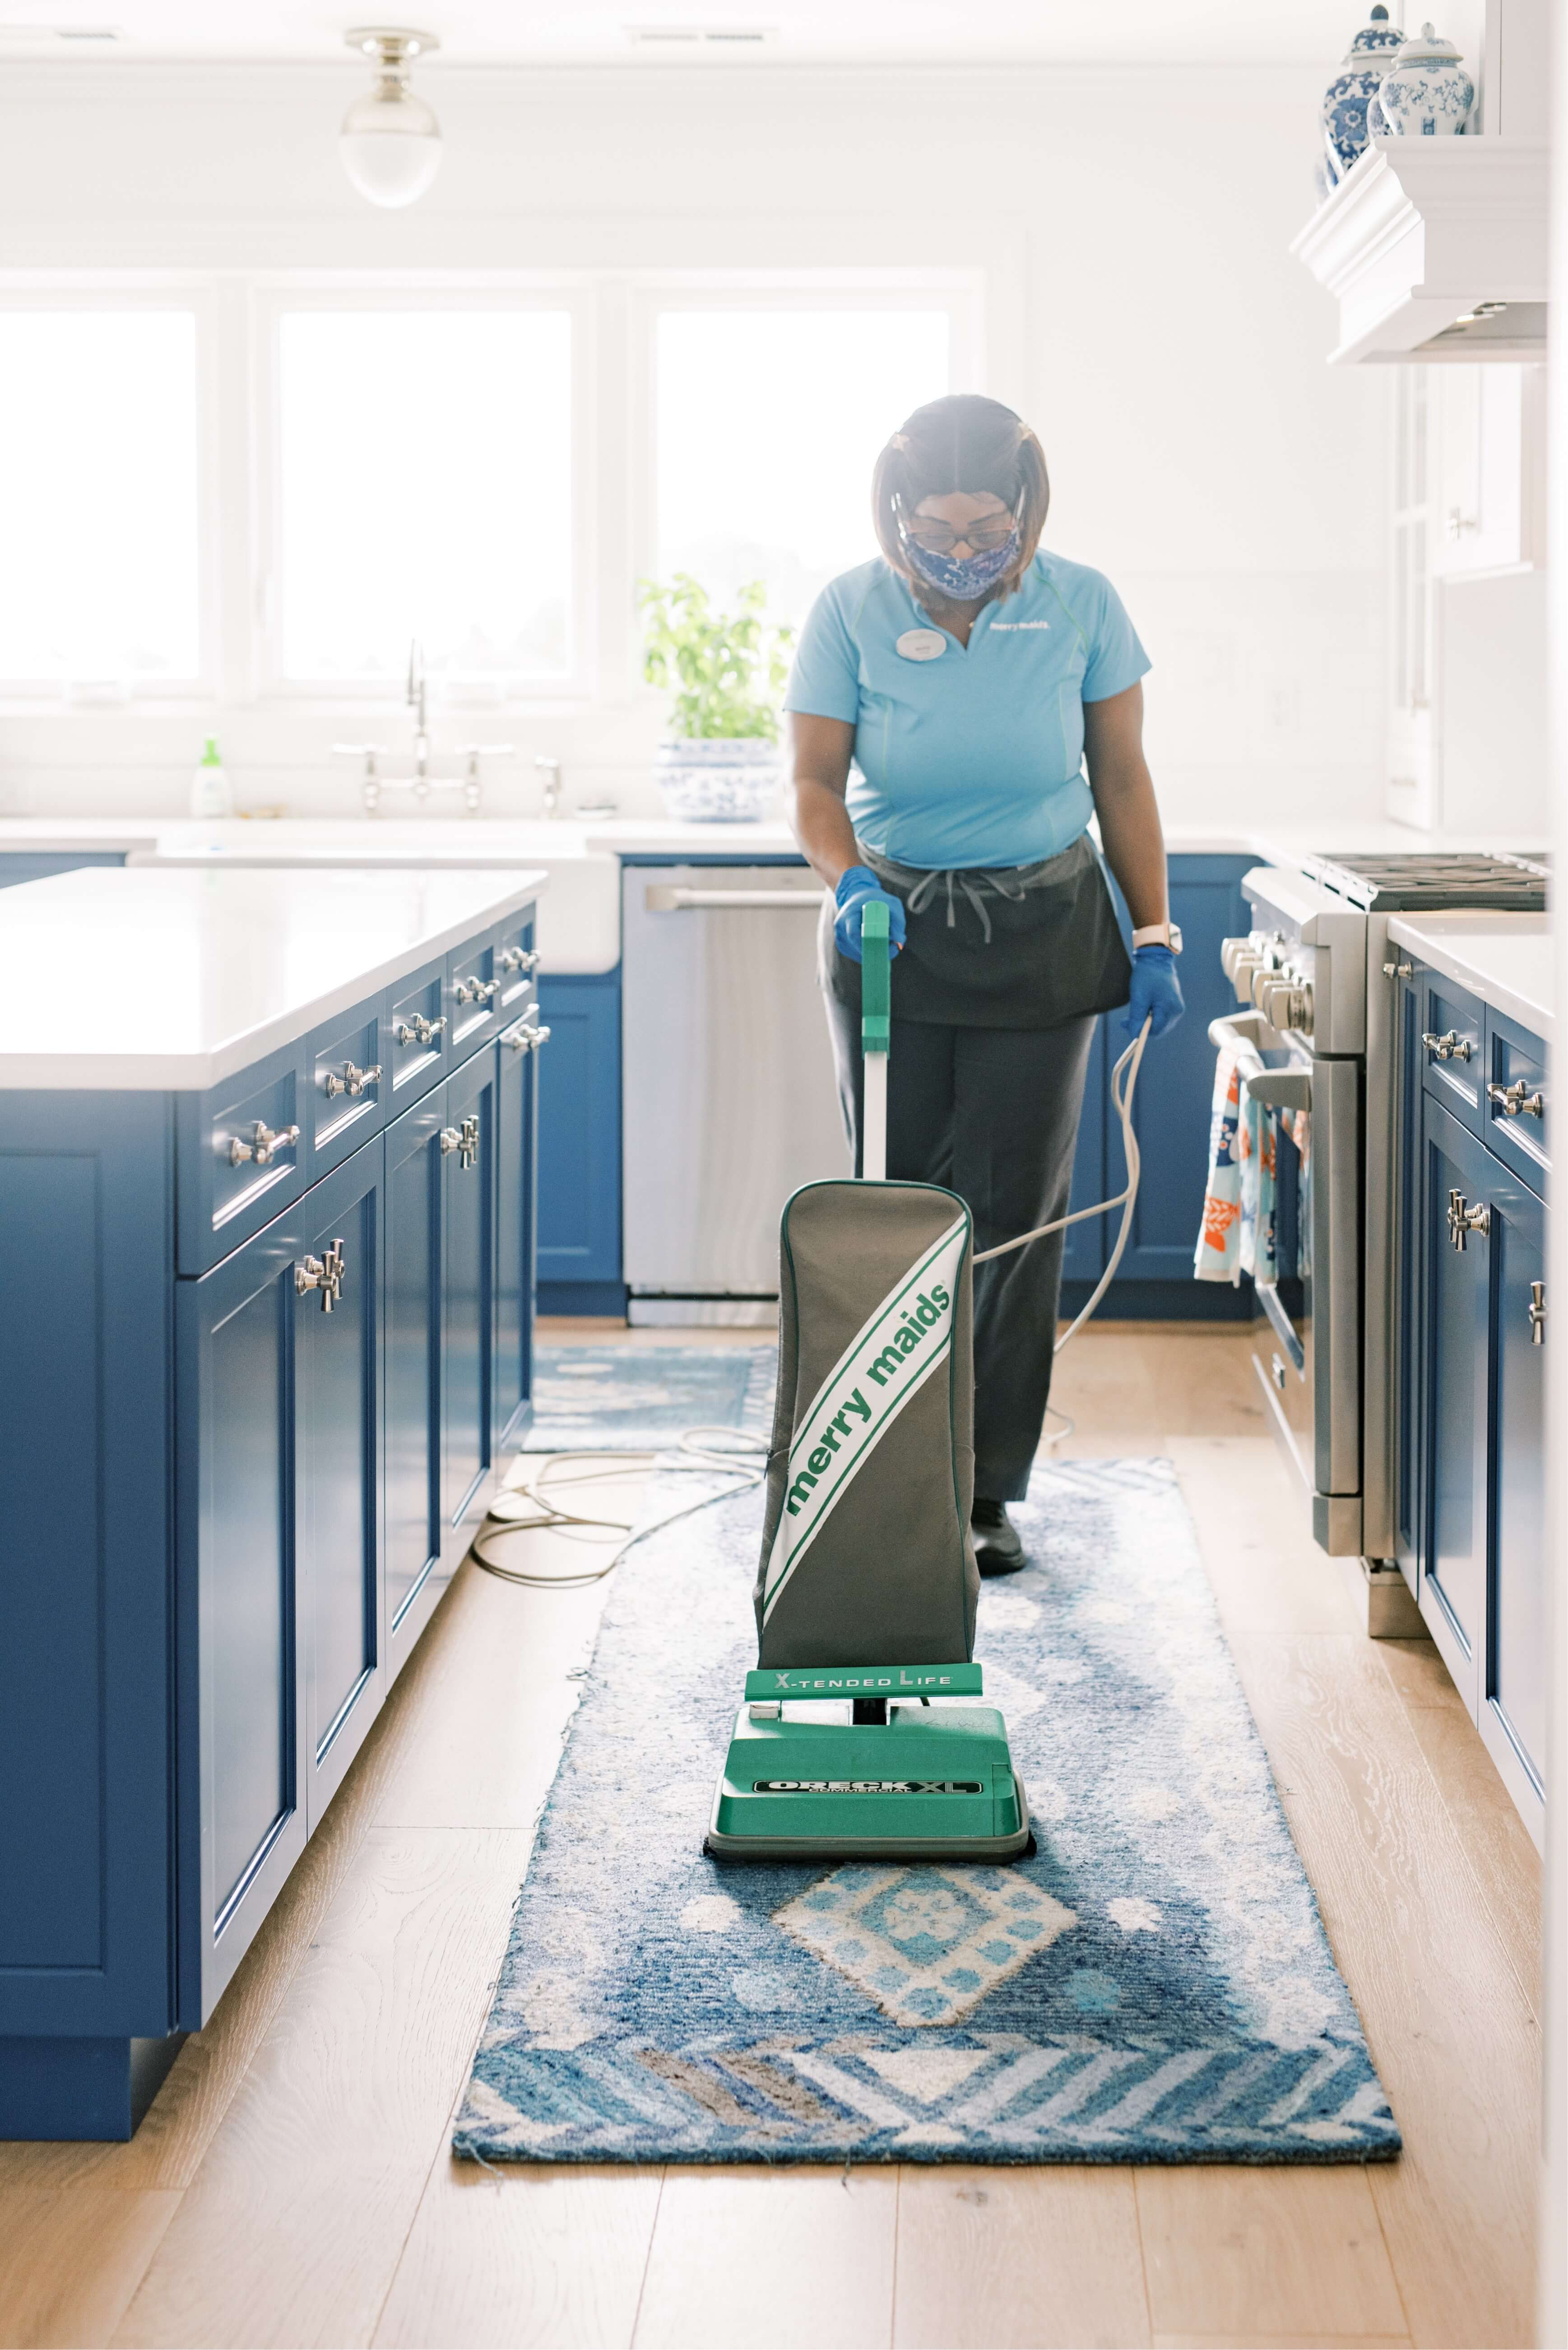 Merry Maids team member vacuuming in kitchen